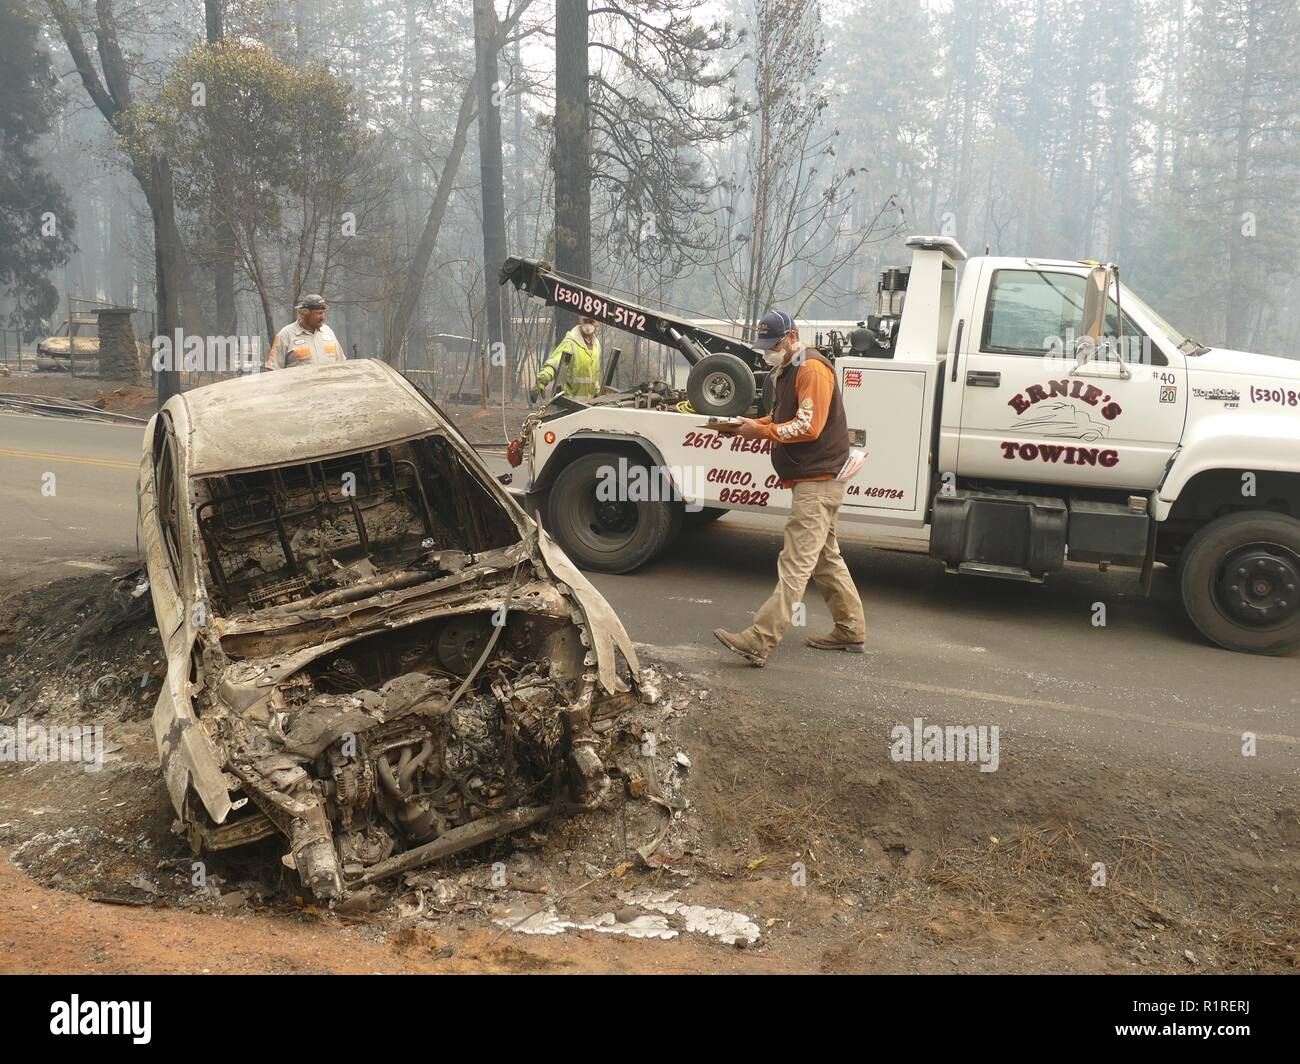 Paradise, USA. 13th Nov, 2018. Matt Hyatt of Highway Patrol transports burnt-out cars from the roadside after the forest fire, the so-called 'camp' fire. Paradise has become a ghost town. Only fire engines and fire engines drive through the spooky landscape. Residents are not allowed to return for the time being. (to dpa 'Paradise as hell on earth - 'Will create a new church' of 14.11.2018) Credit: Barbara Munker/dpa/Alamy Live News - Stock Image